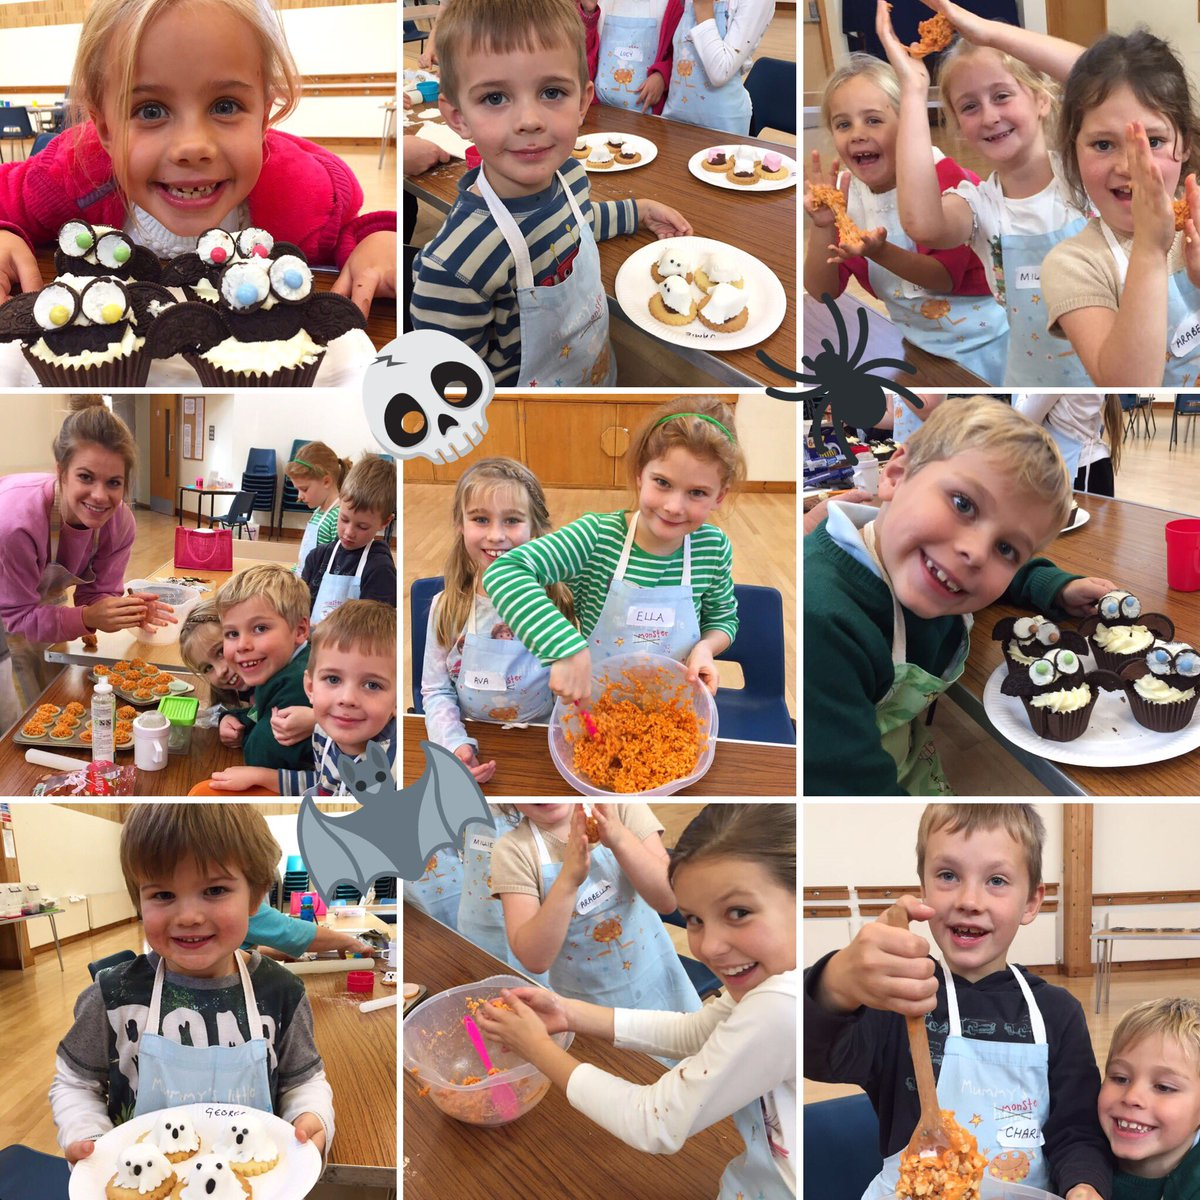 SueChef School On Twitter Fantastic Halloween Cookery Course - Children's birthday parties tunbridge wells